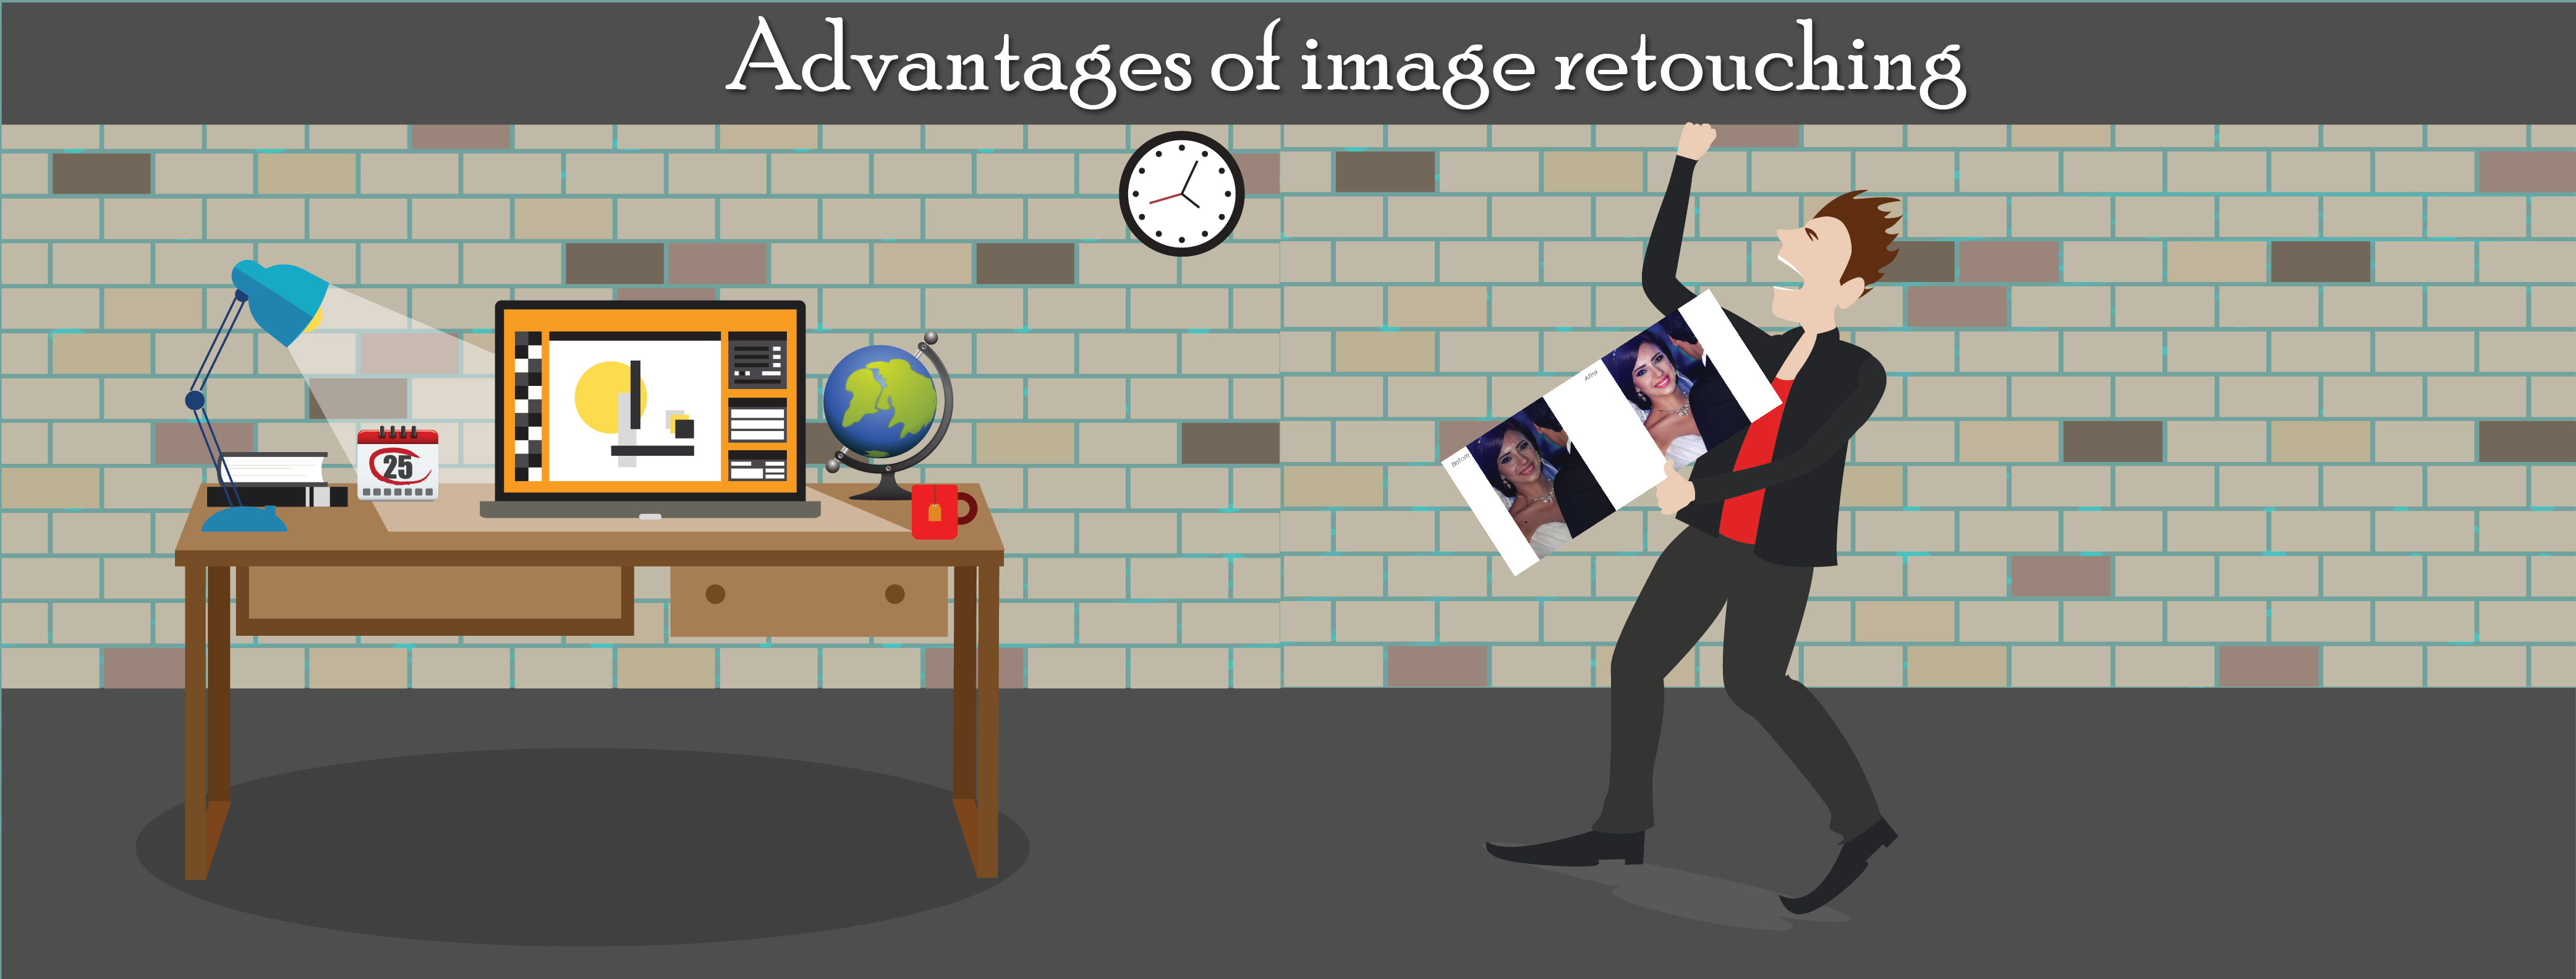 Advantages of image retouching